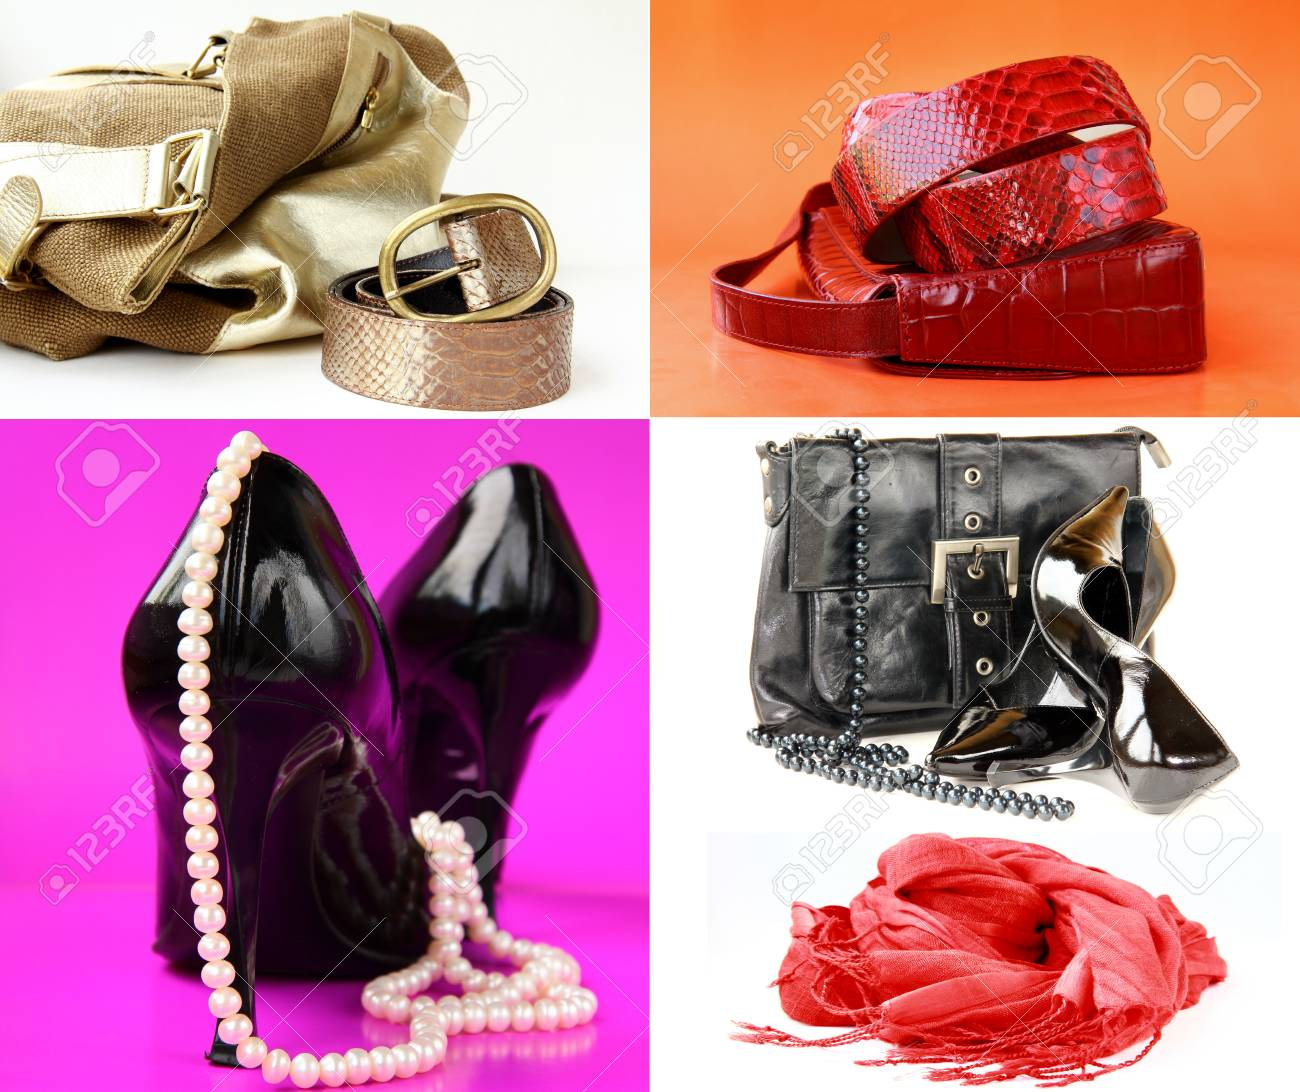 f46cd9b9c4 Accessories For Women Shoes